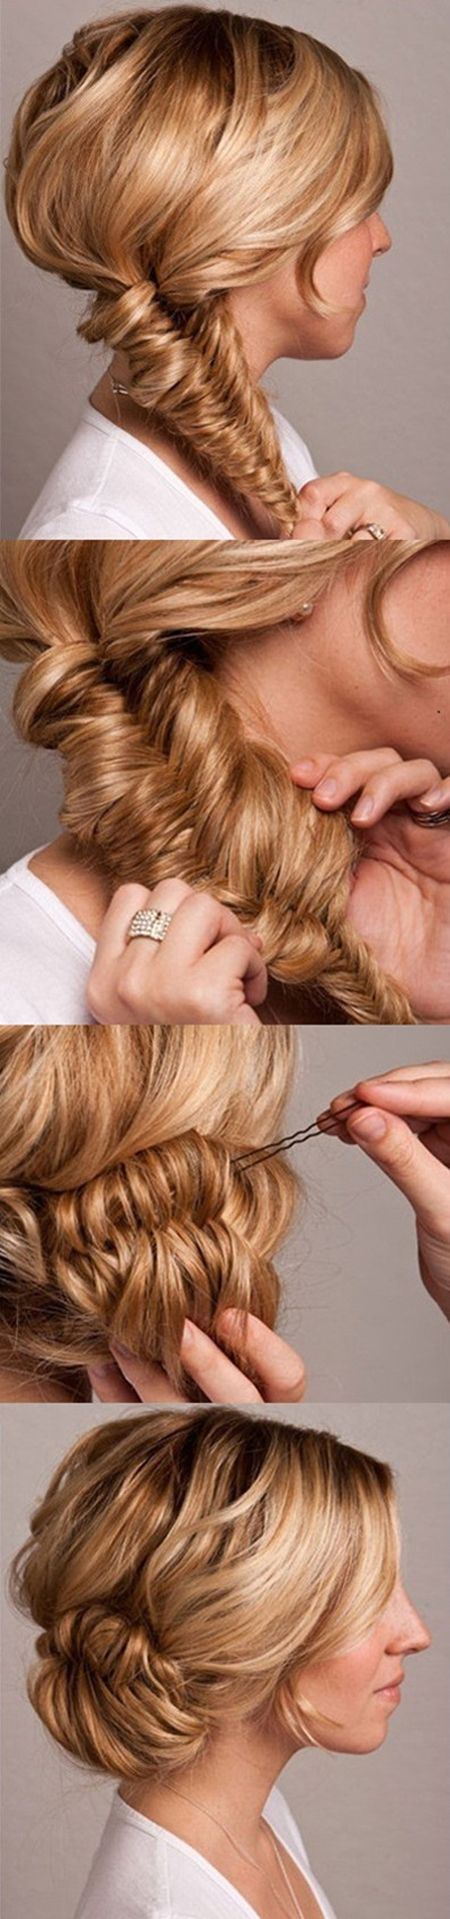 Fishtail Bun Wedding Hair Tutorial  Once Wed  Fishtail bun Bun